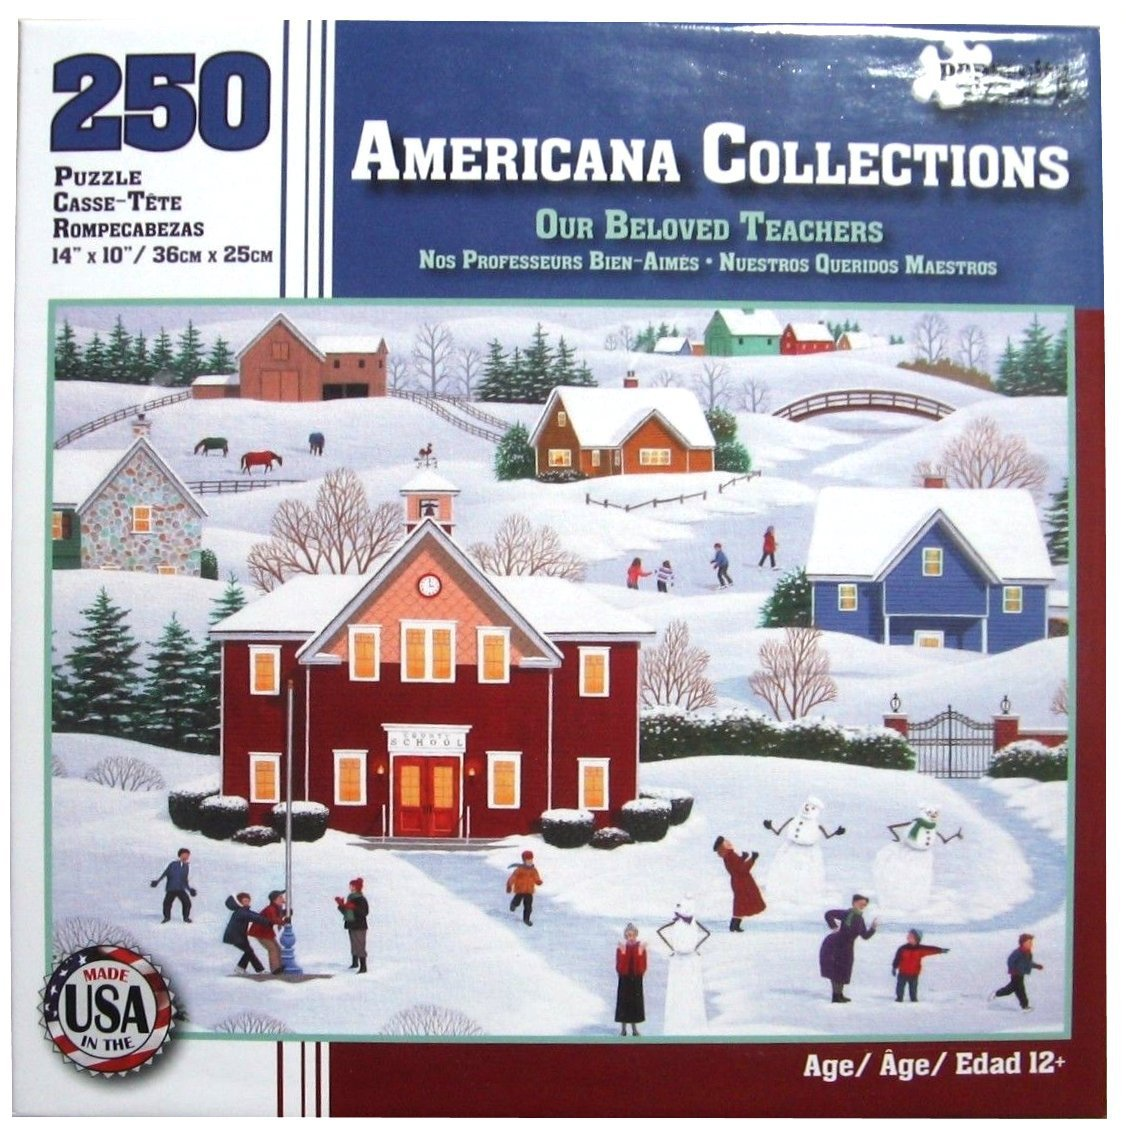 Americana Collections, Our Beloved Teachers - 250 Piece Jigsaw Puzzle